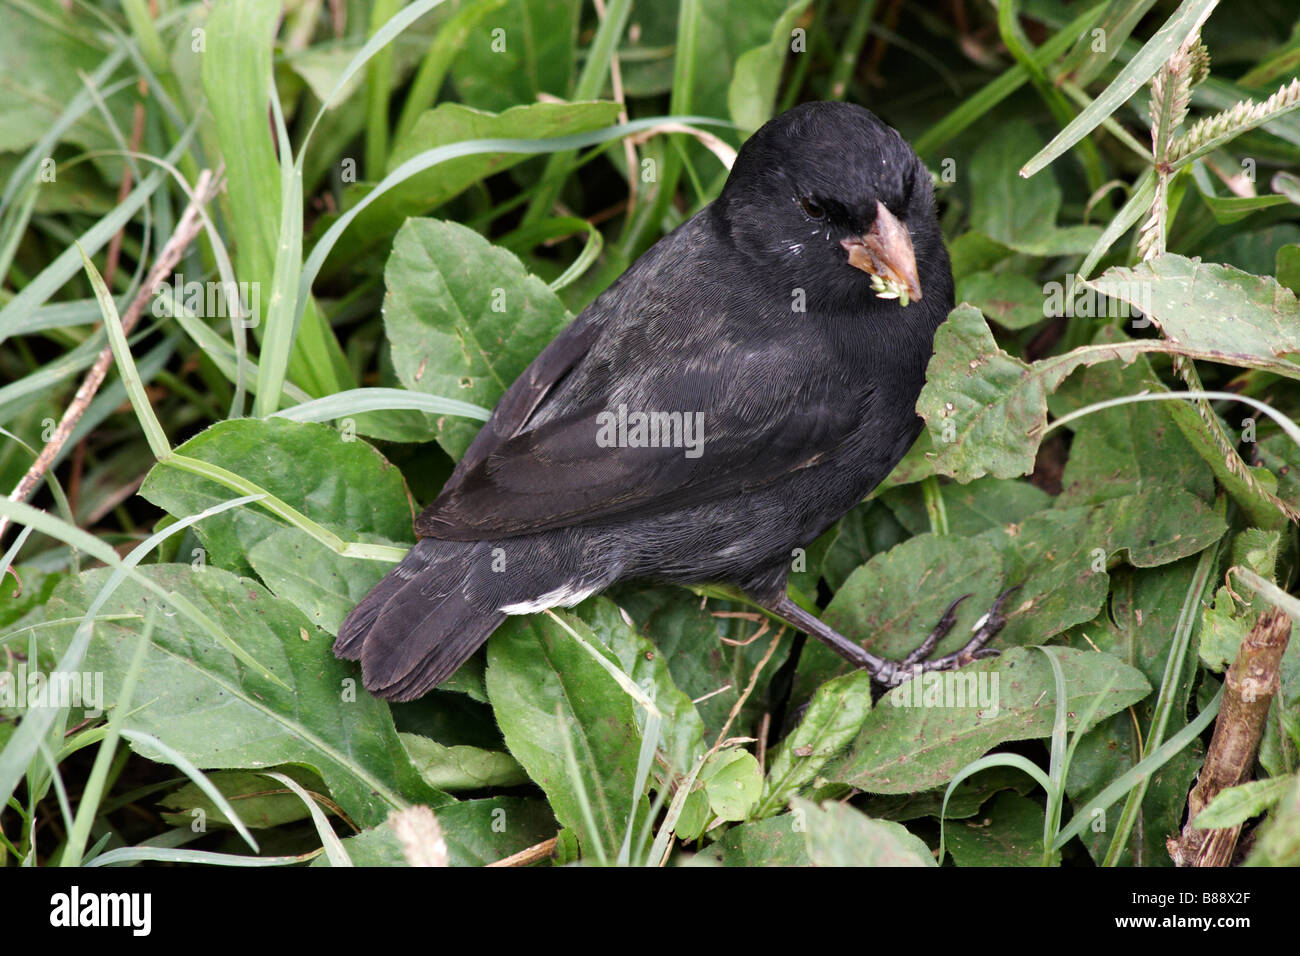 Darwin ground finch, Geospiza, with mouthful of seed at Puerto Ayora Highlands, Santa Cruz Island, Galapagos Islands, - Stock Image